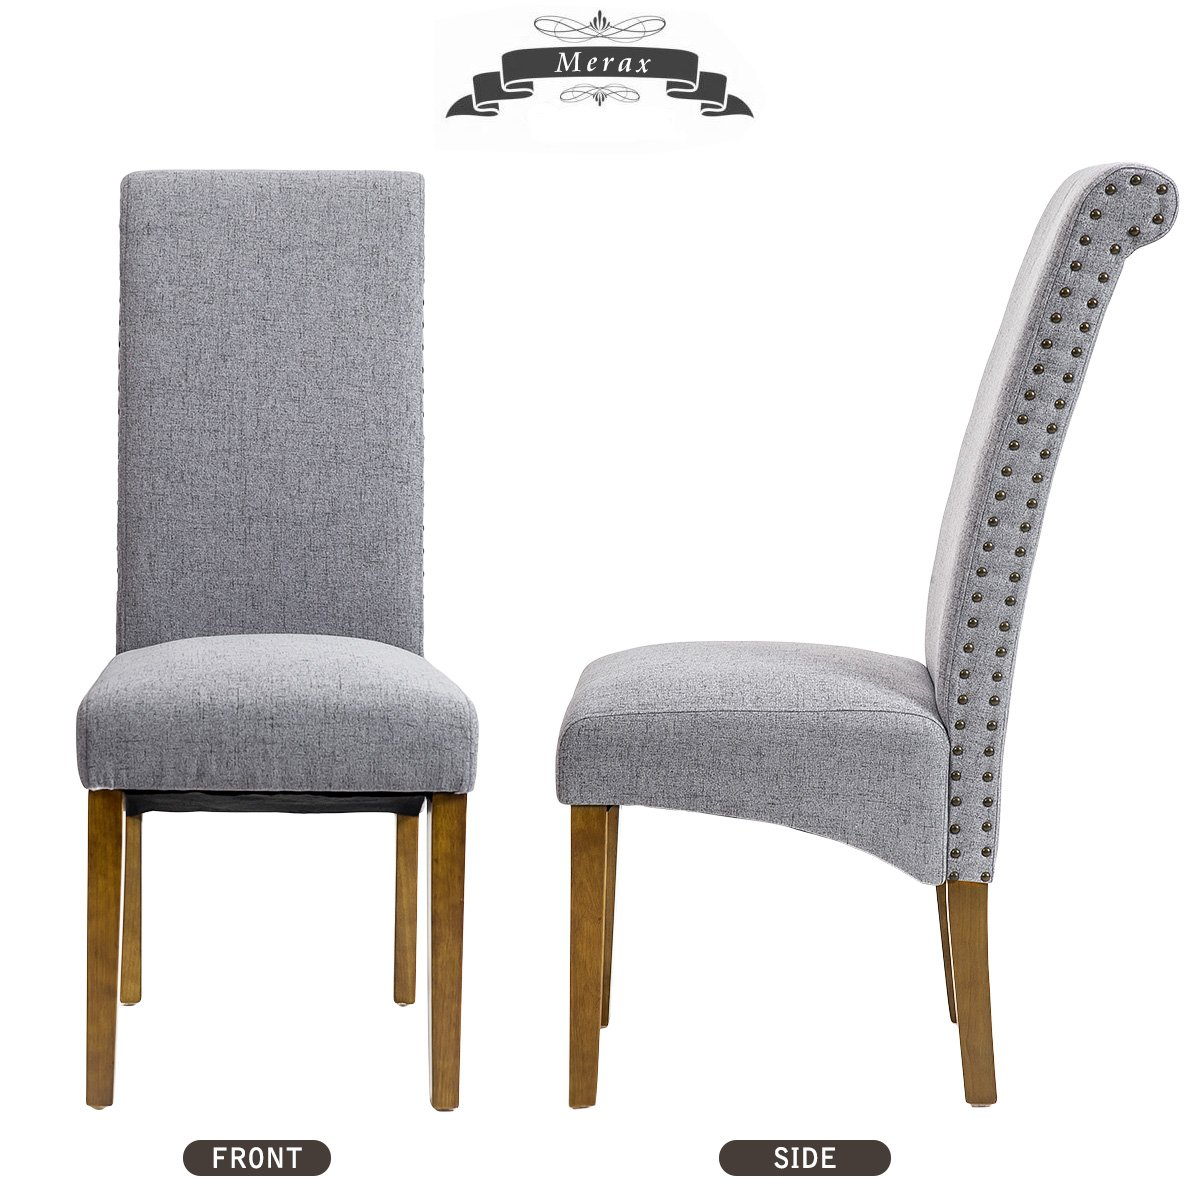 Merax Dining Chairs Set of 2 Fabric Padded Side Chair with Solid Wood Legs, Nailed Trim(Grey) by Merax (Image #3)